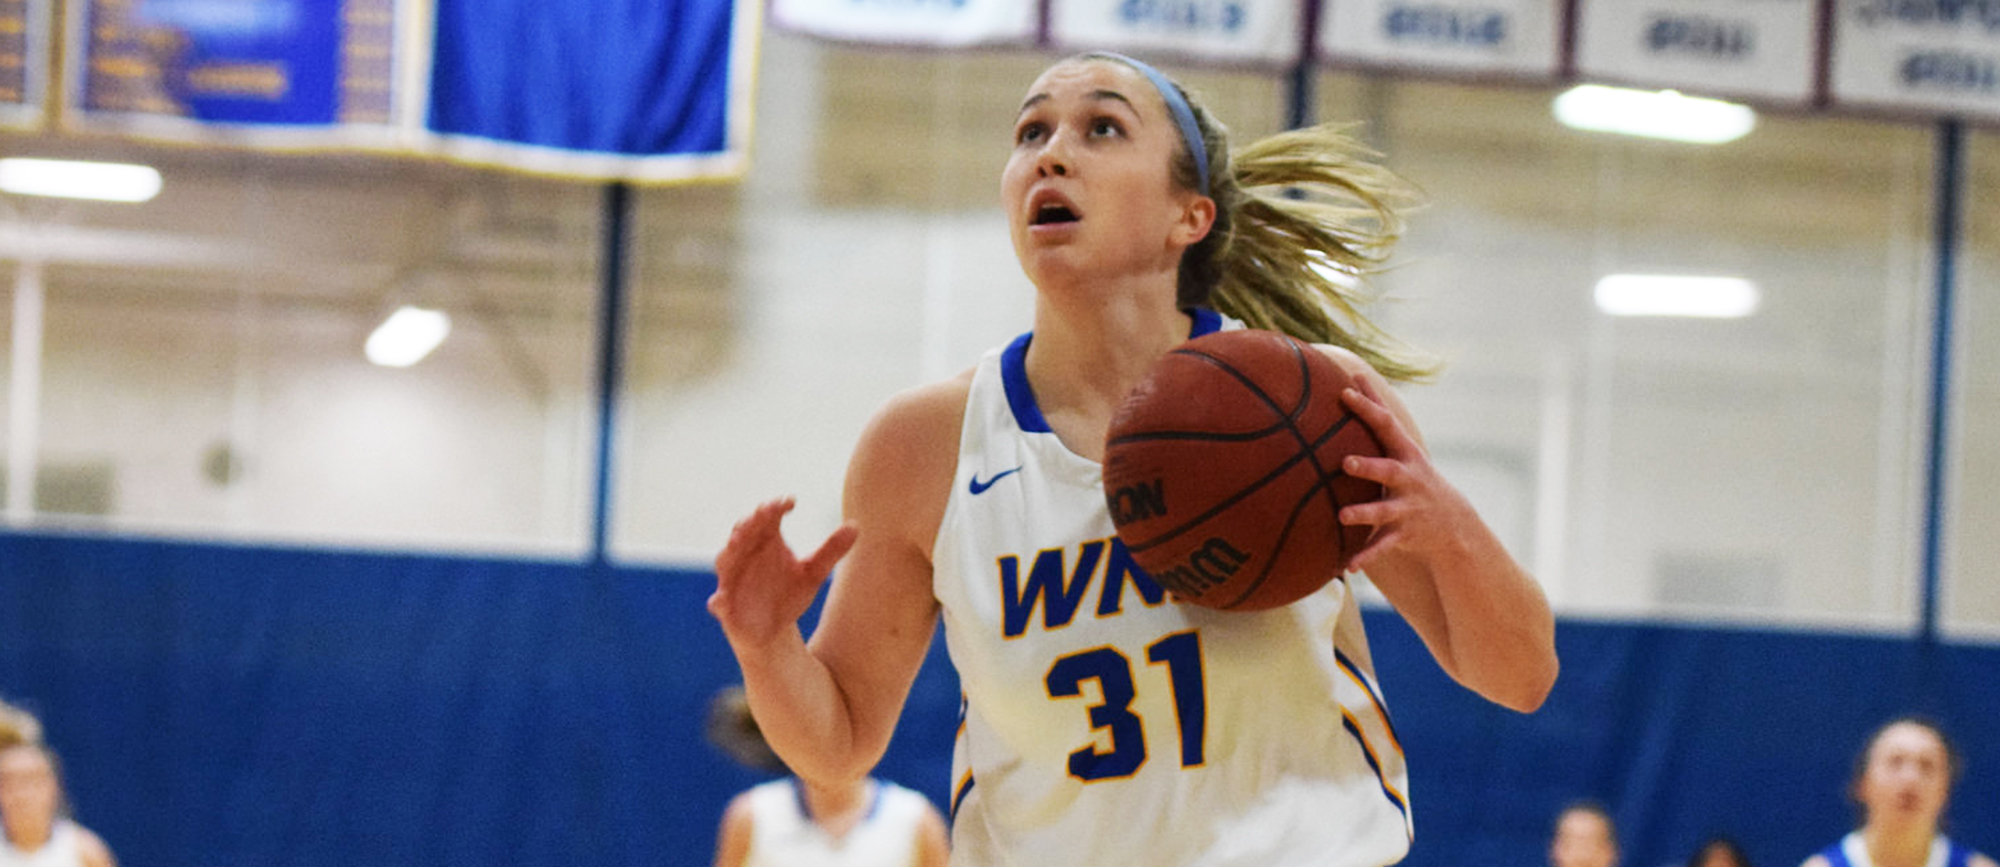 Junior Meghan Orbann scored 15 points in Western New England's 63-54 loss to UNE on Saturday. (Photo by Rachael Margossian)